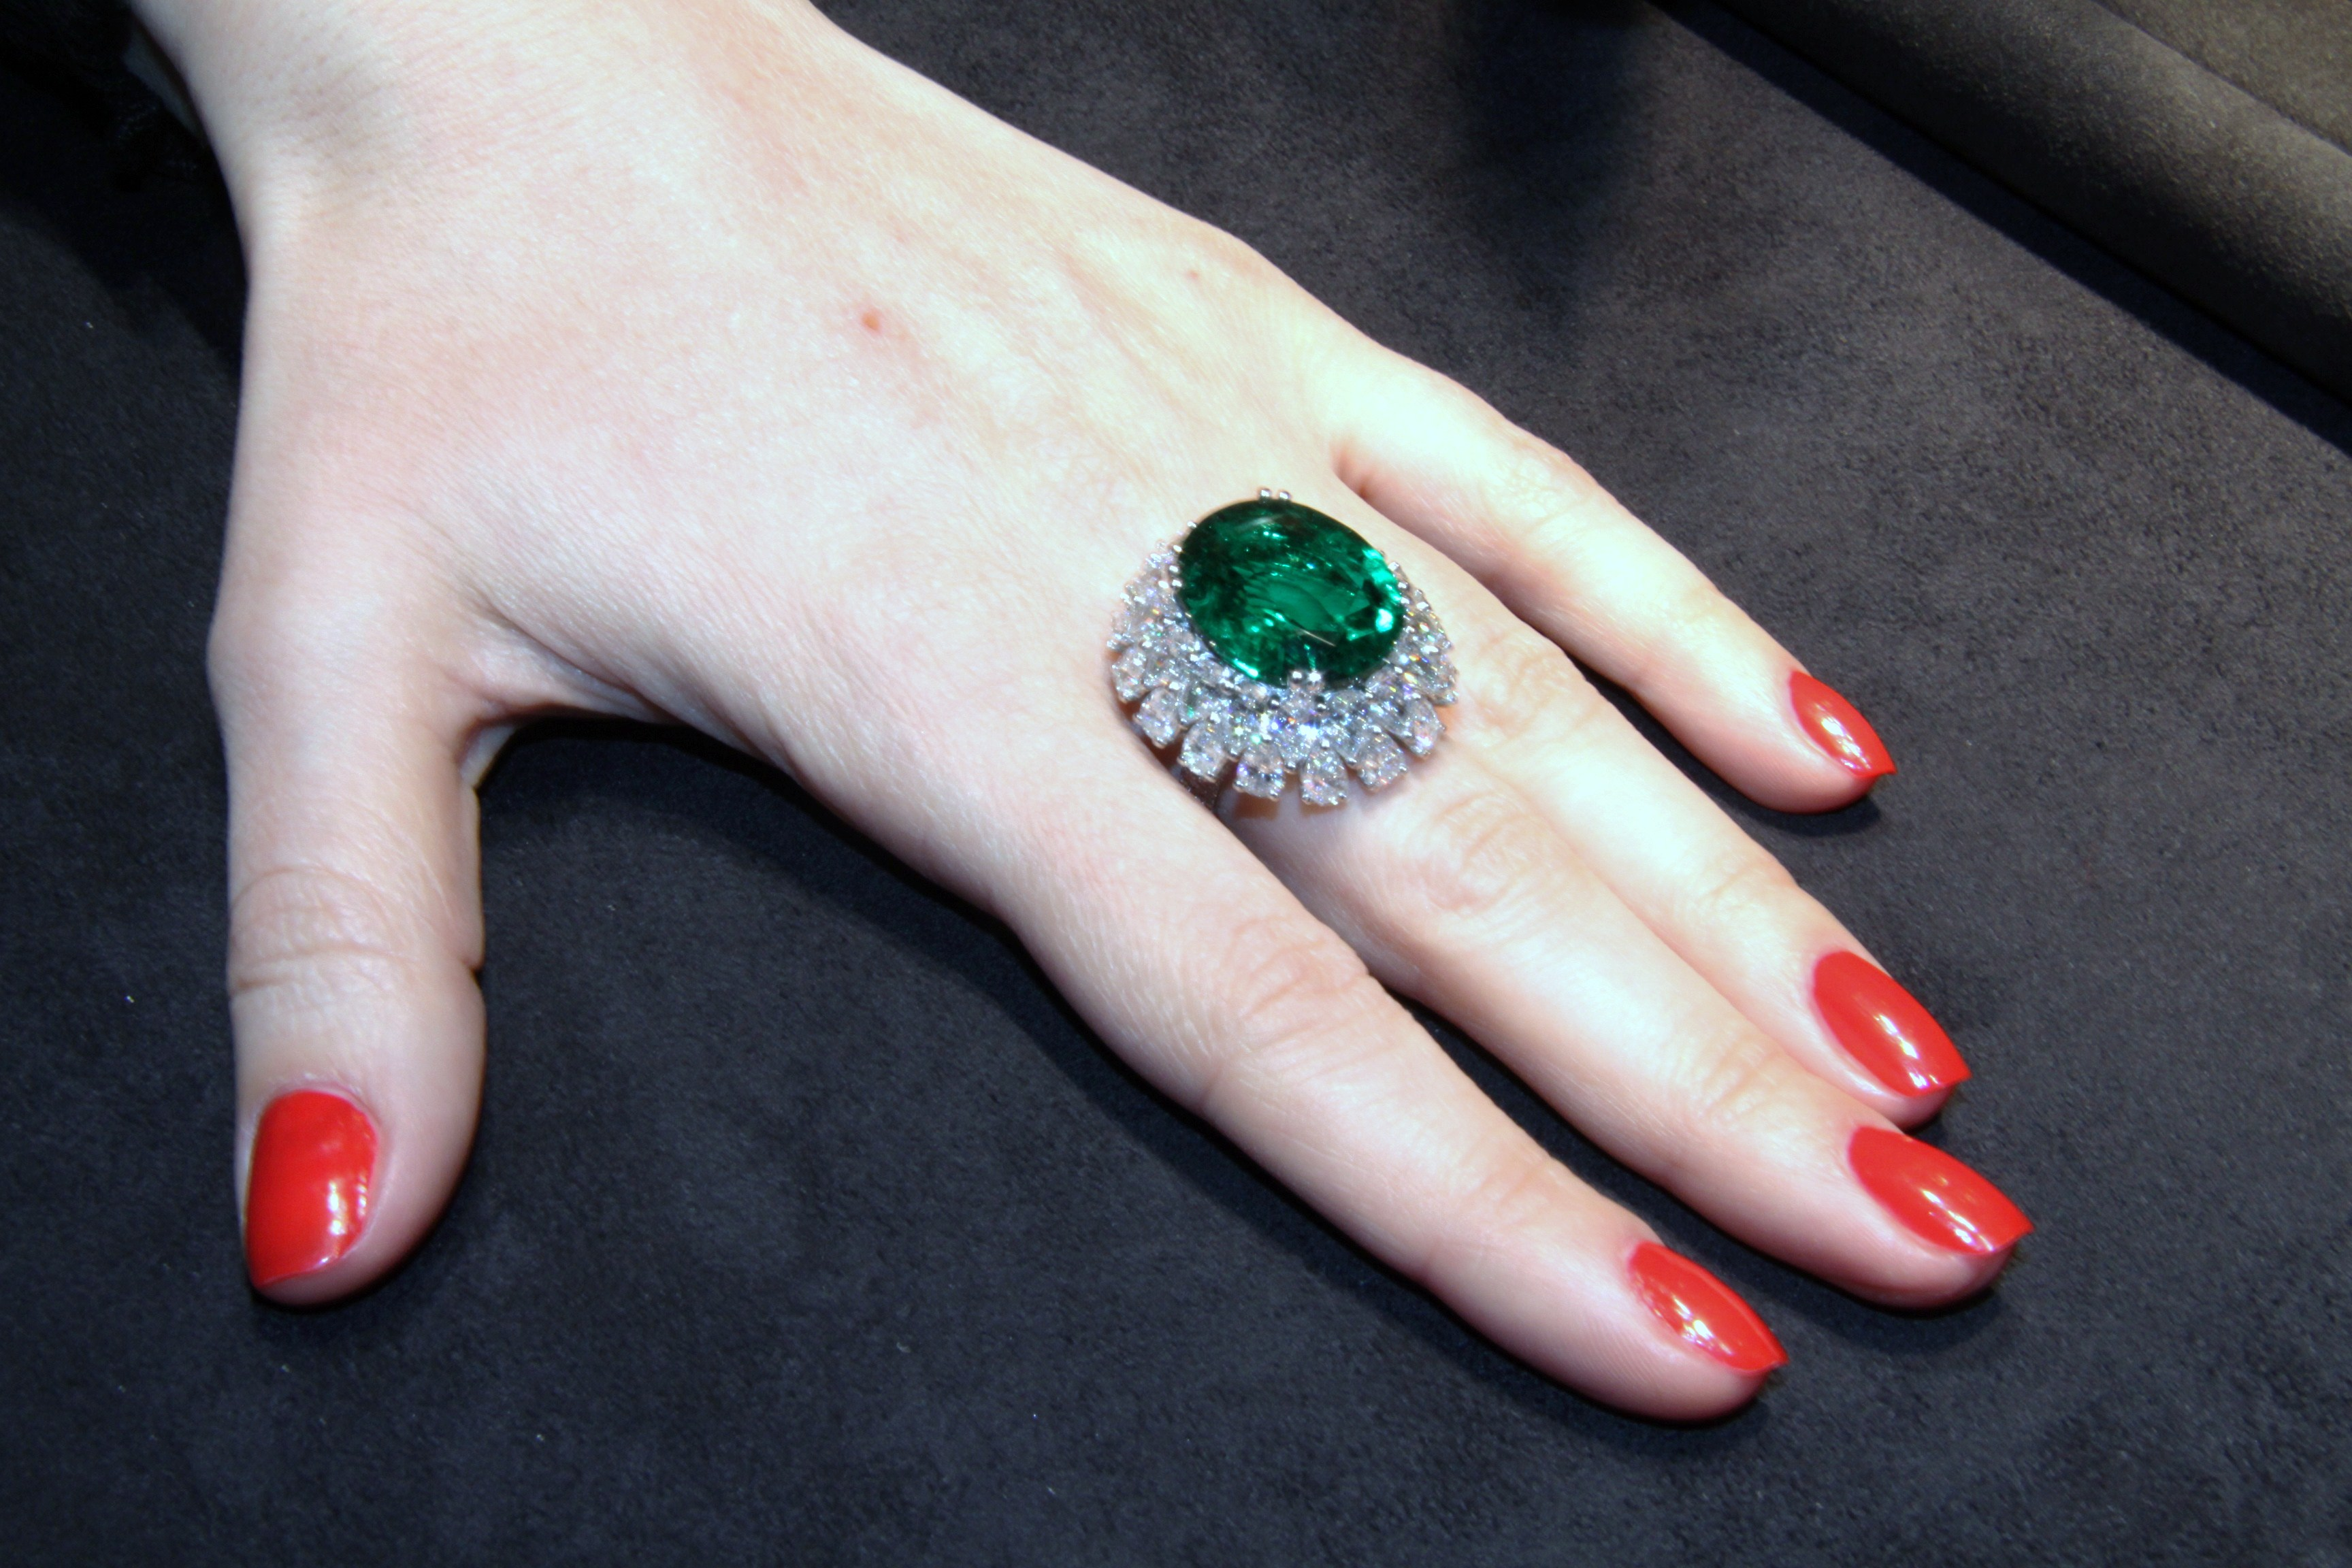 Gorgeous ring set with an impressive oval-shaped emerald and pear-shaped cut diamonds, Picchiotti